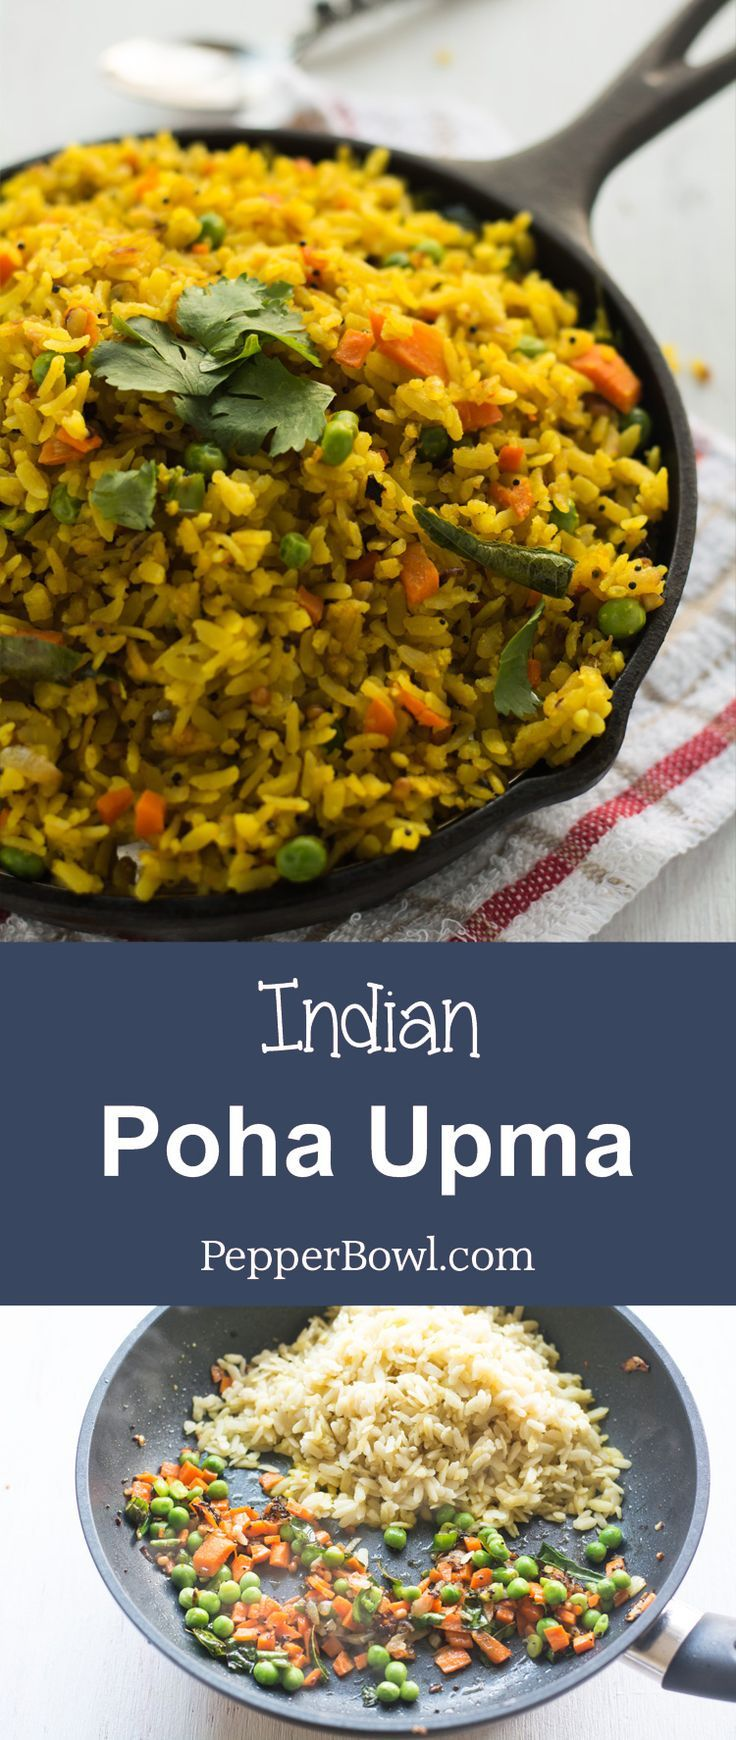 Pin by Malti Gaur on Indian food in 2019 | Recipes, Indian